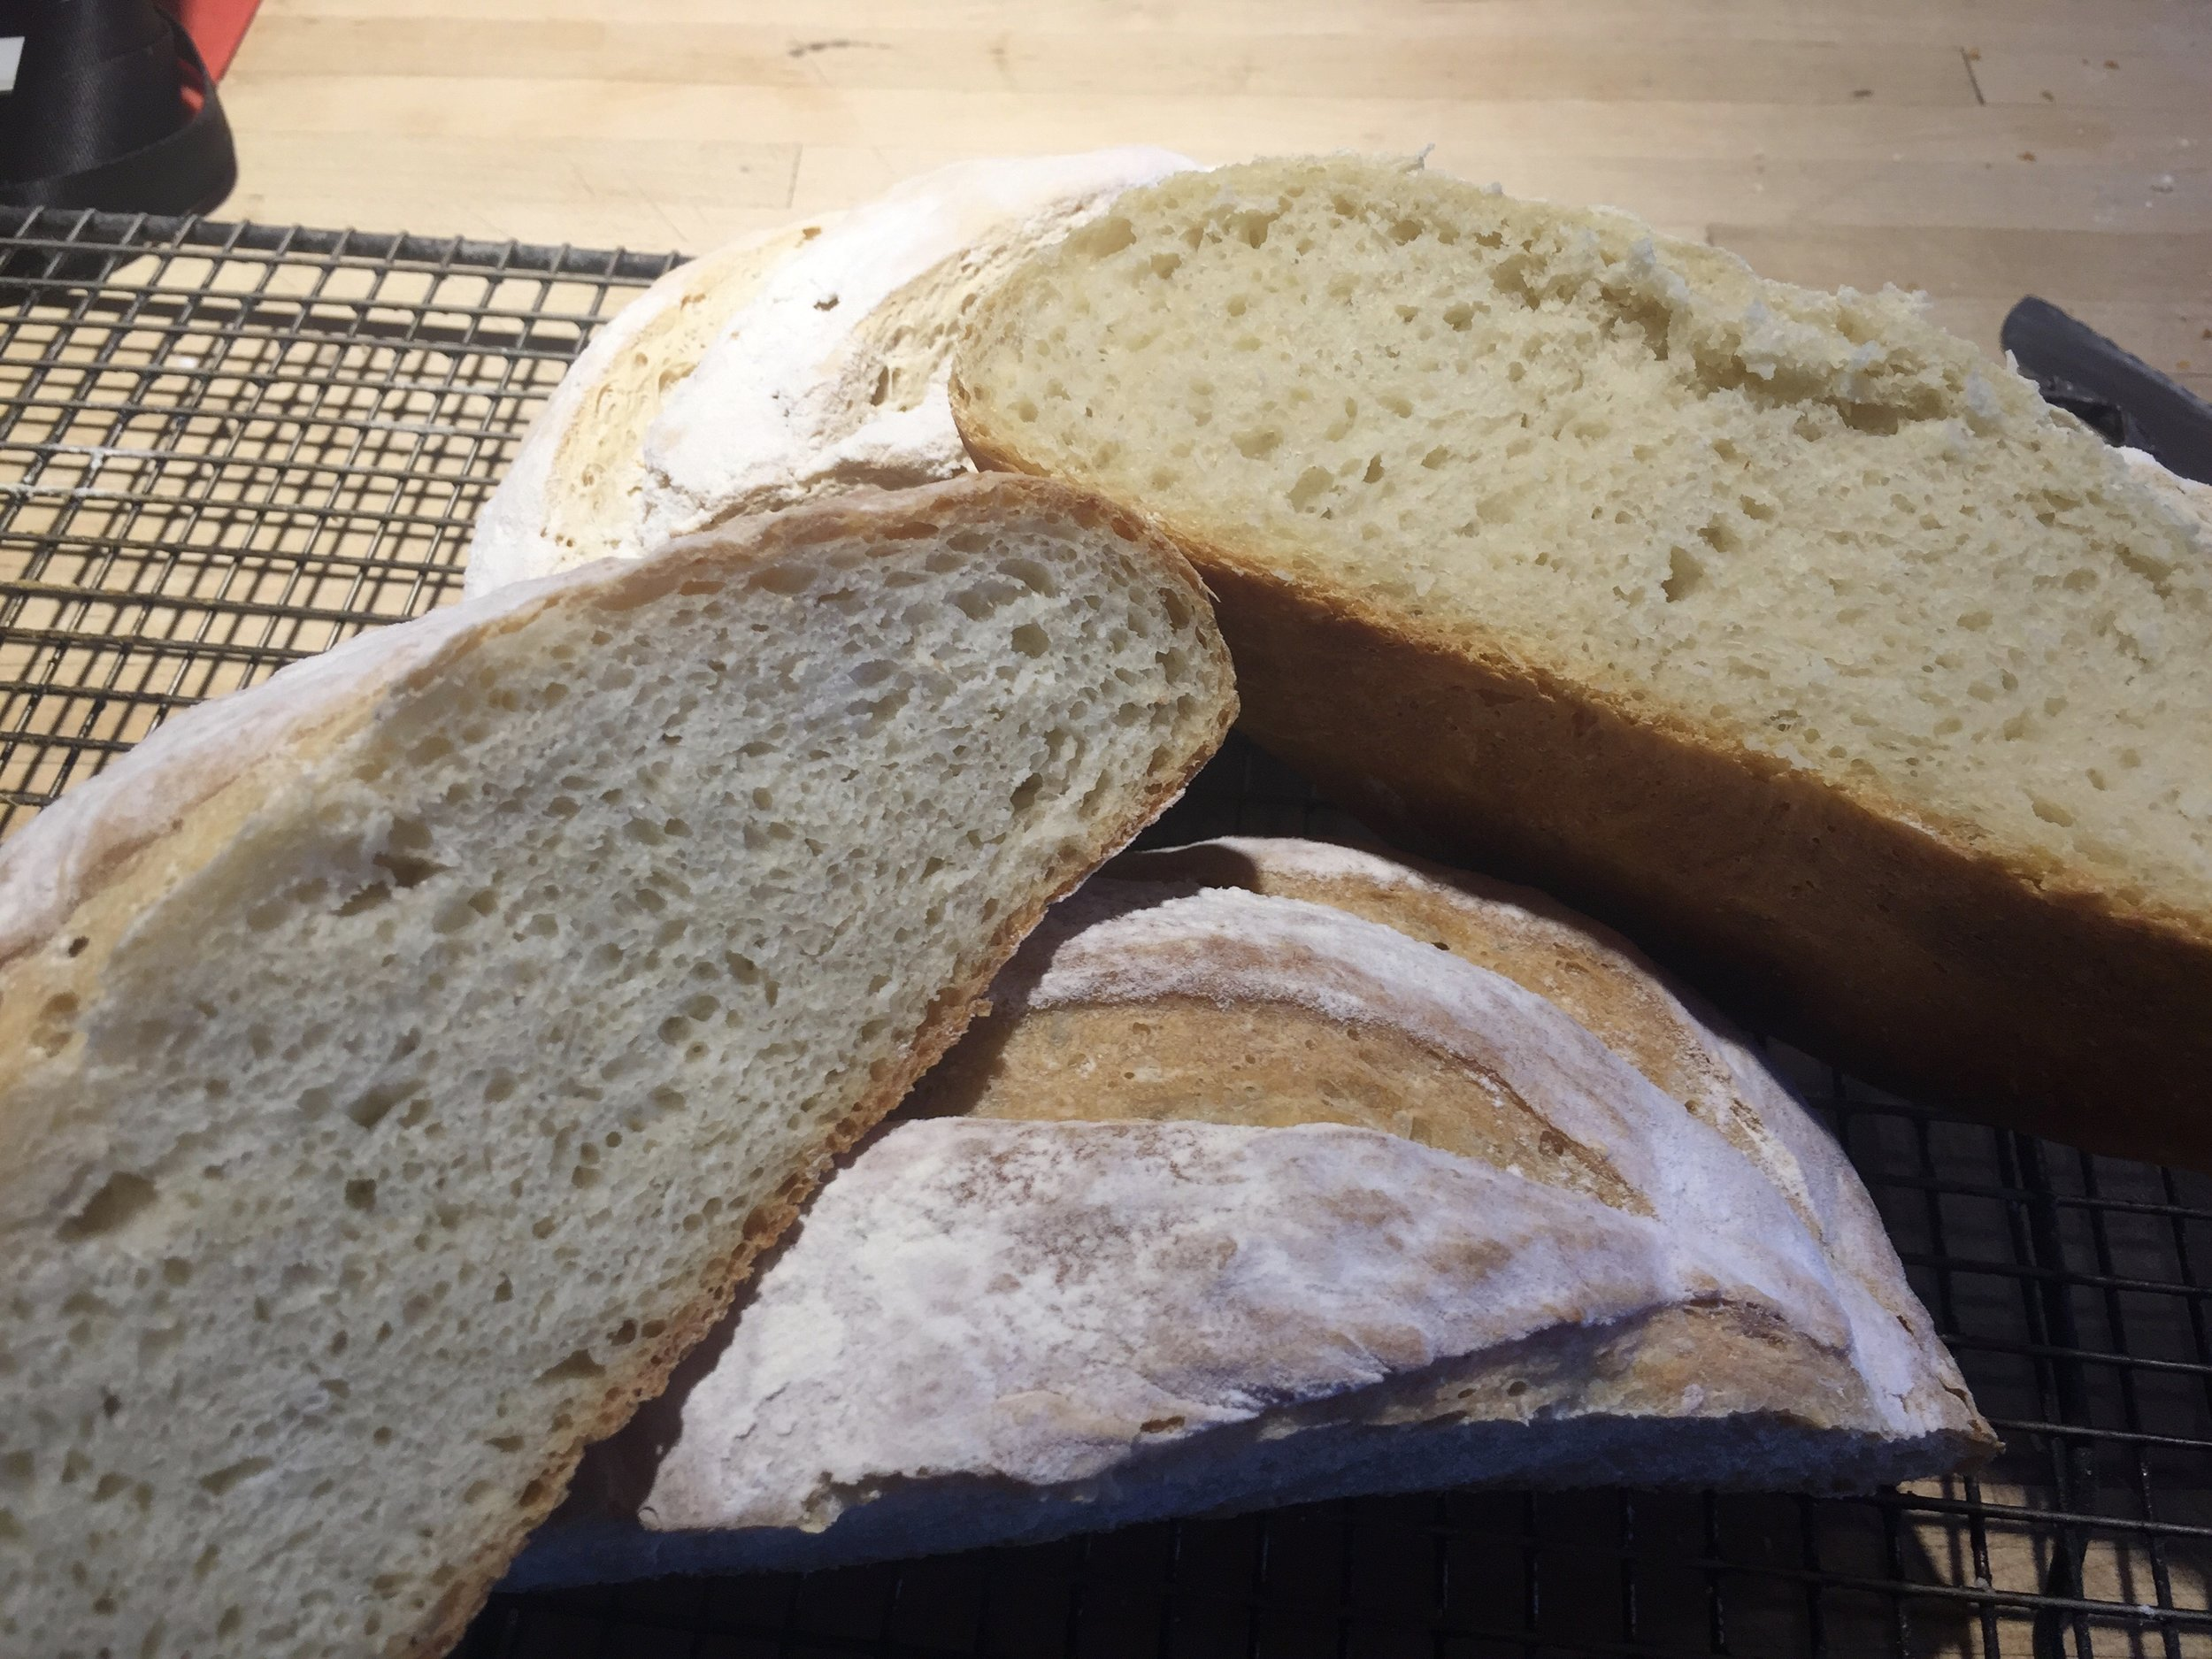 The bread flour loaf has a golden crust and a good crumb - the hydration was low, 71% so I was not expected big air holes in the crumb. Still you can see the cake flour loaf has a cottony crumb and had no crust color. Bleaching flour removes all the carotenoid pigments.